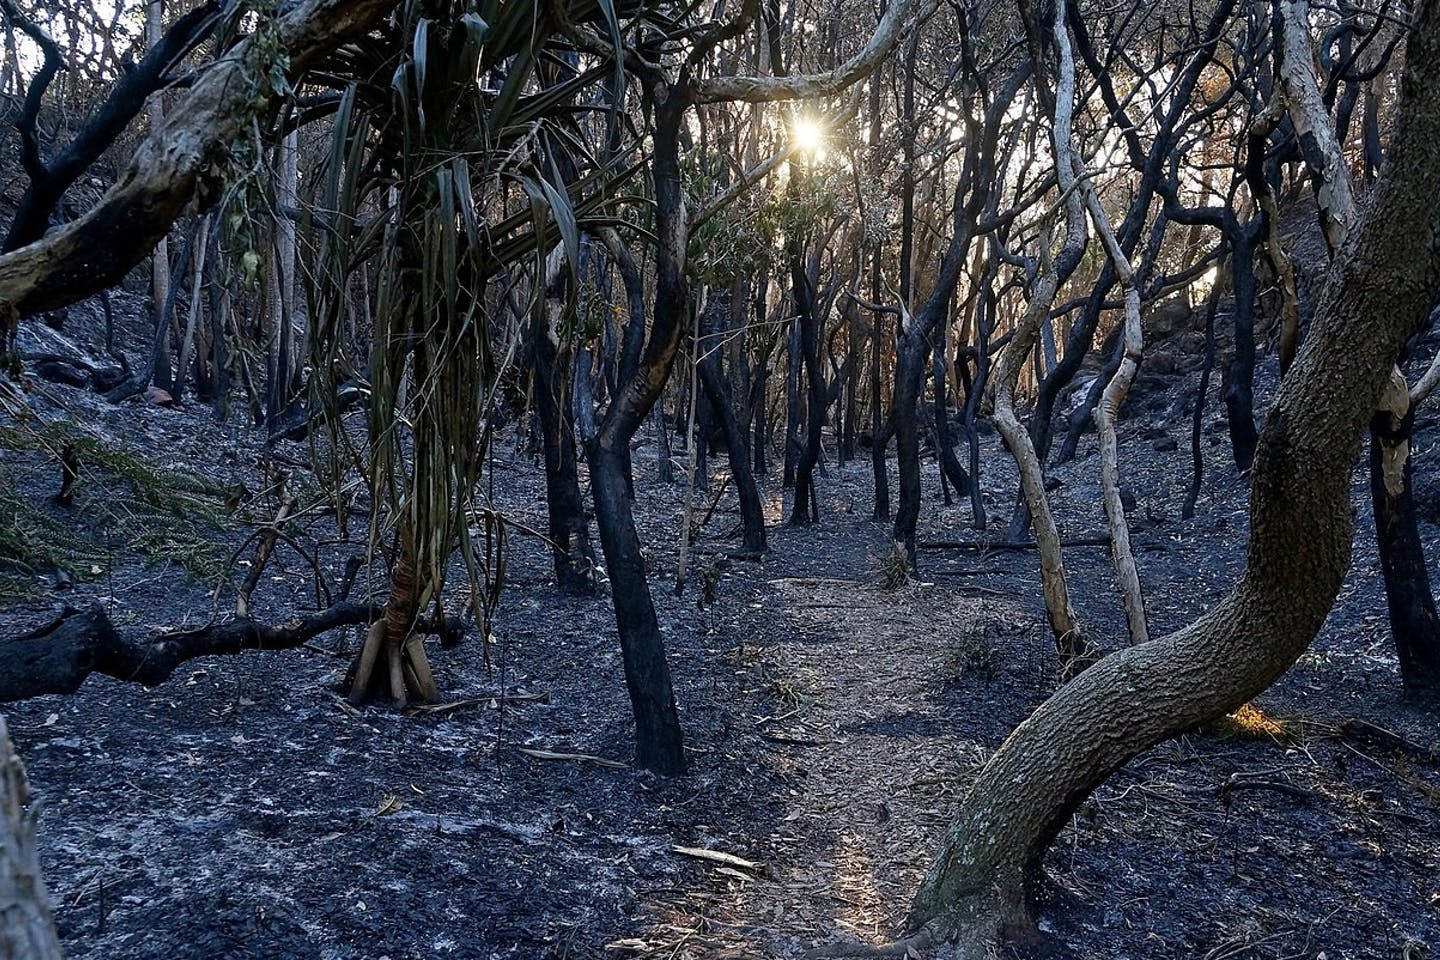 Burned forest, Australia